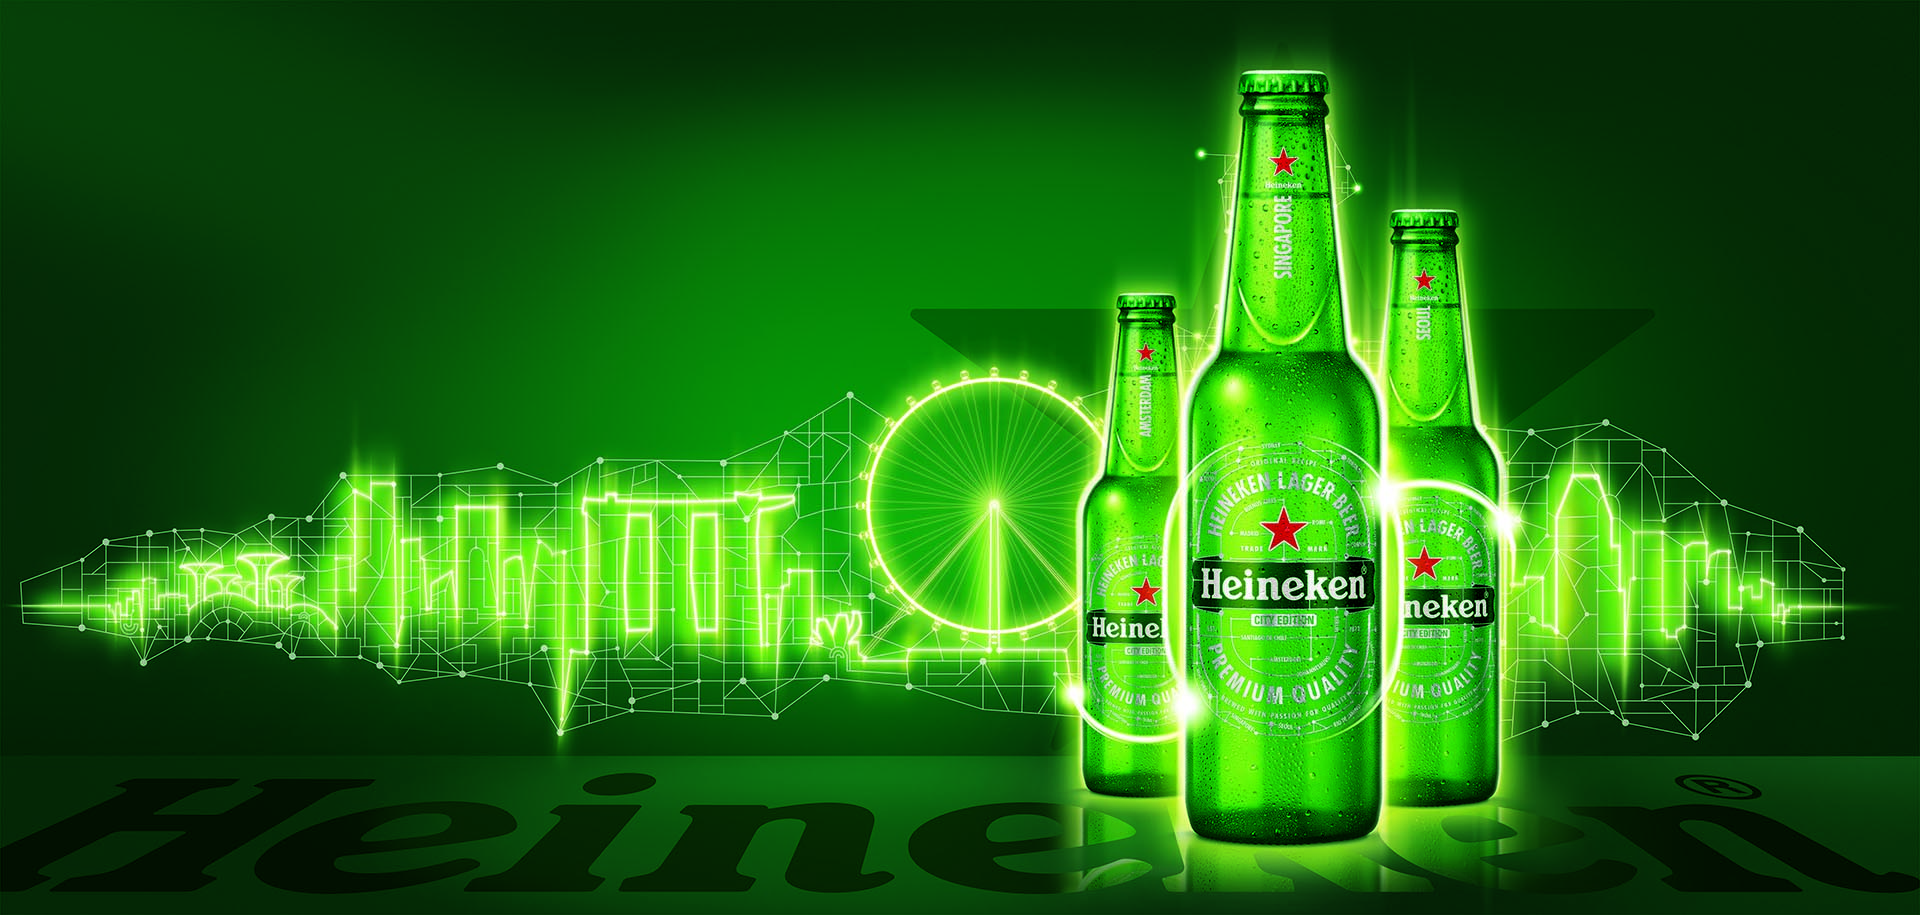 072 Heineken Cities_Local KV